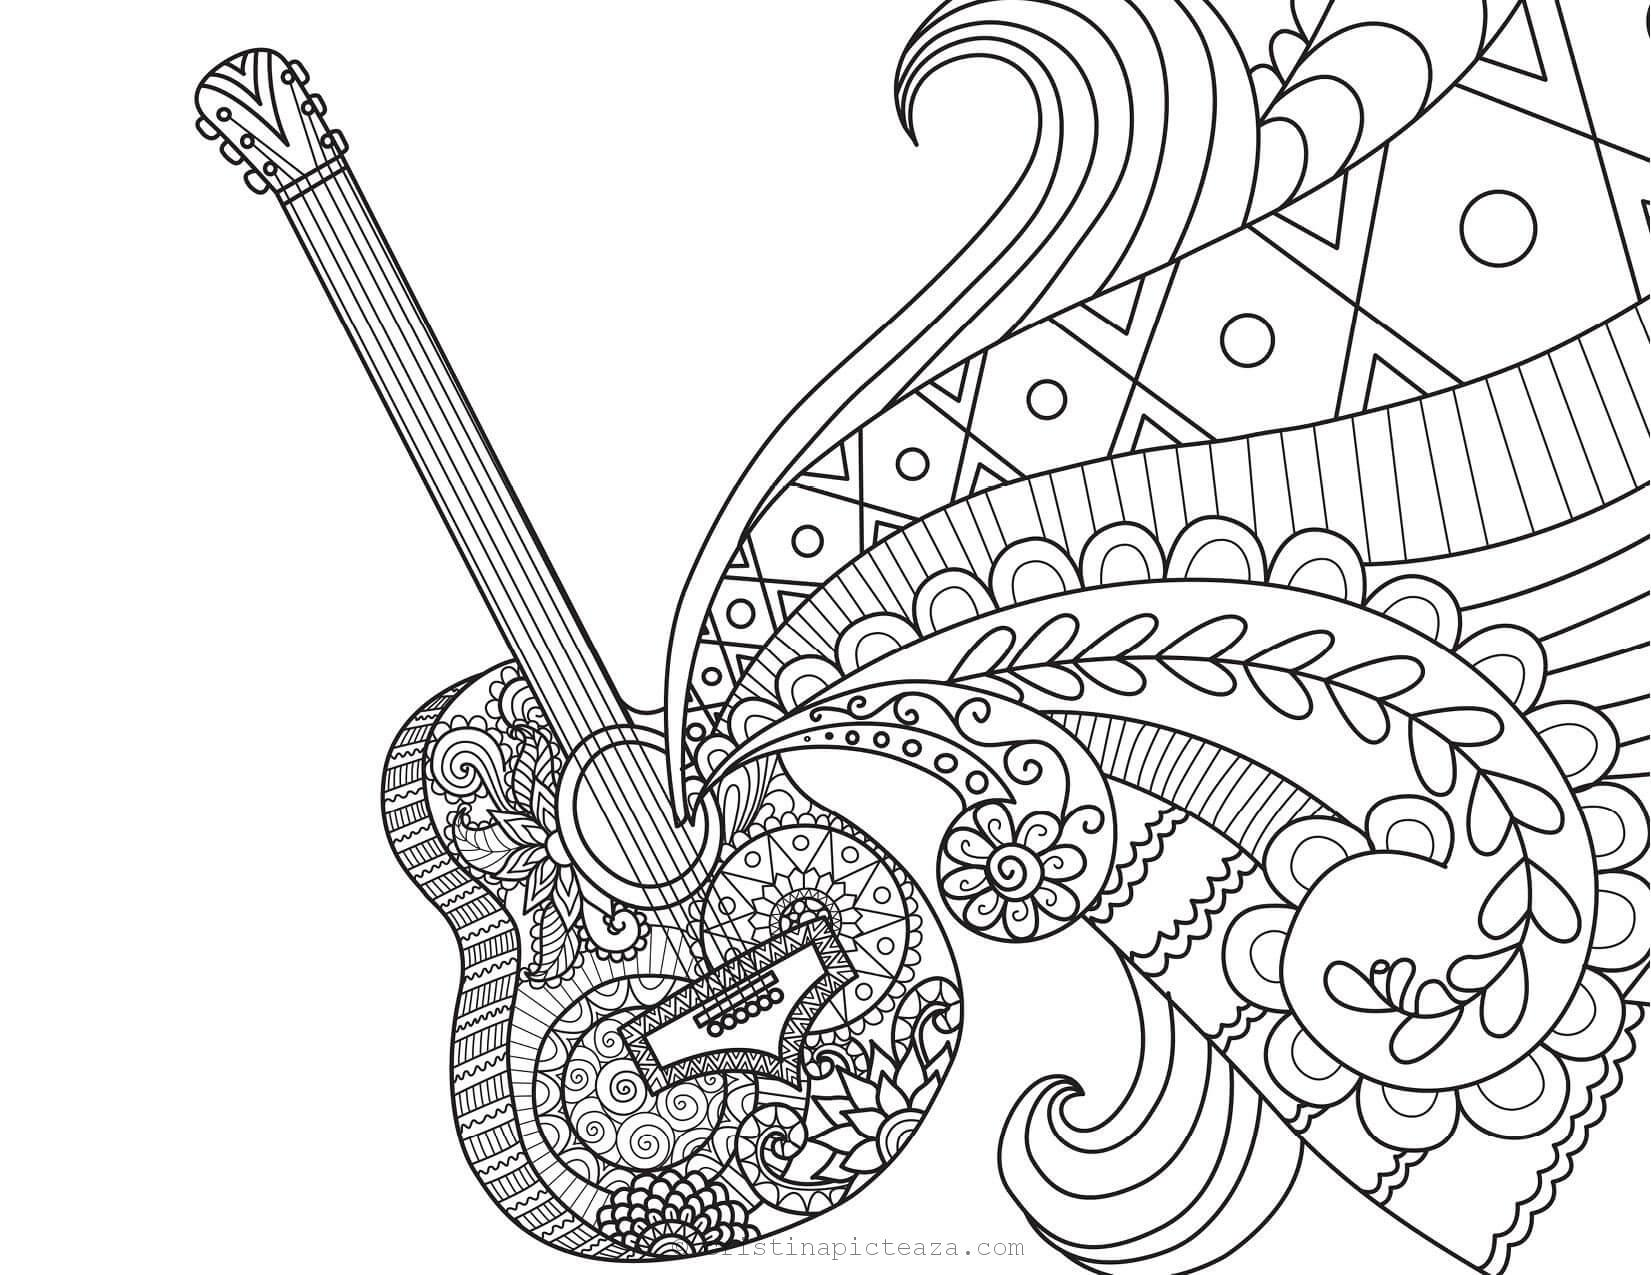 Coco Coloring Pages Drawings From Coco Animation